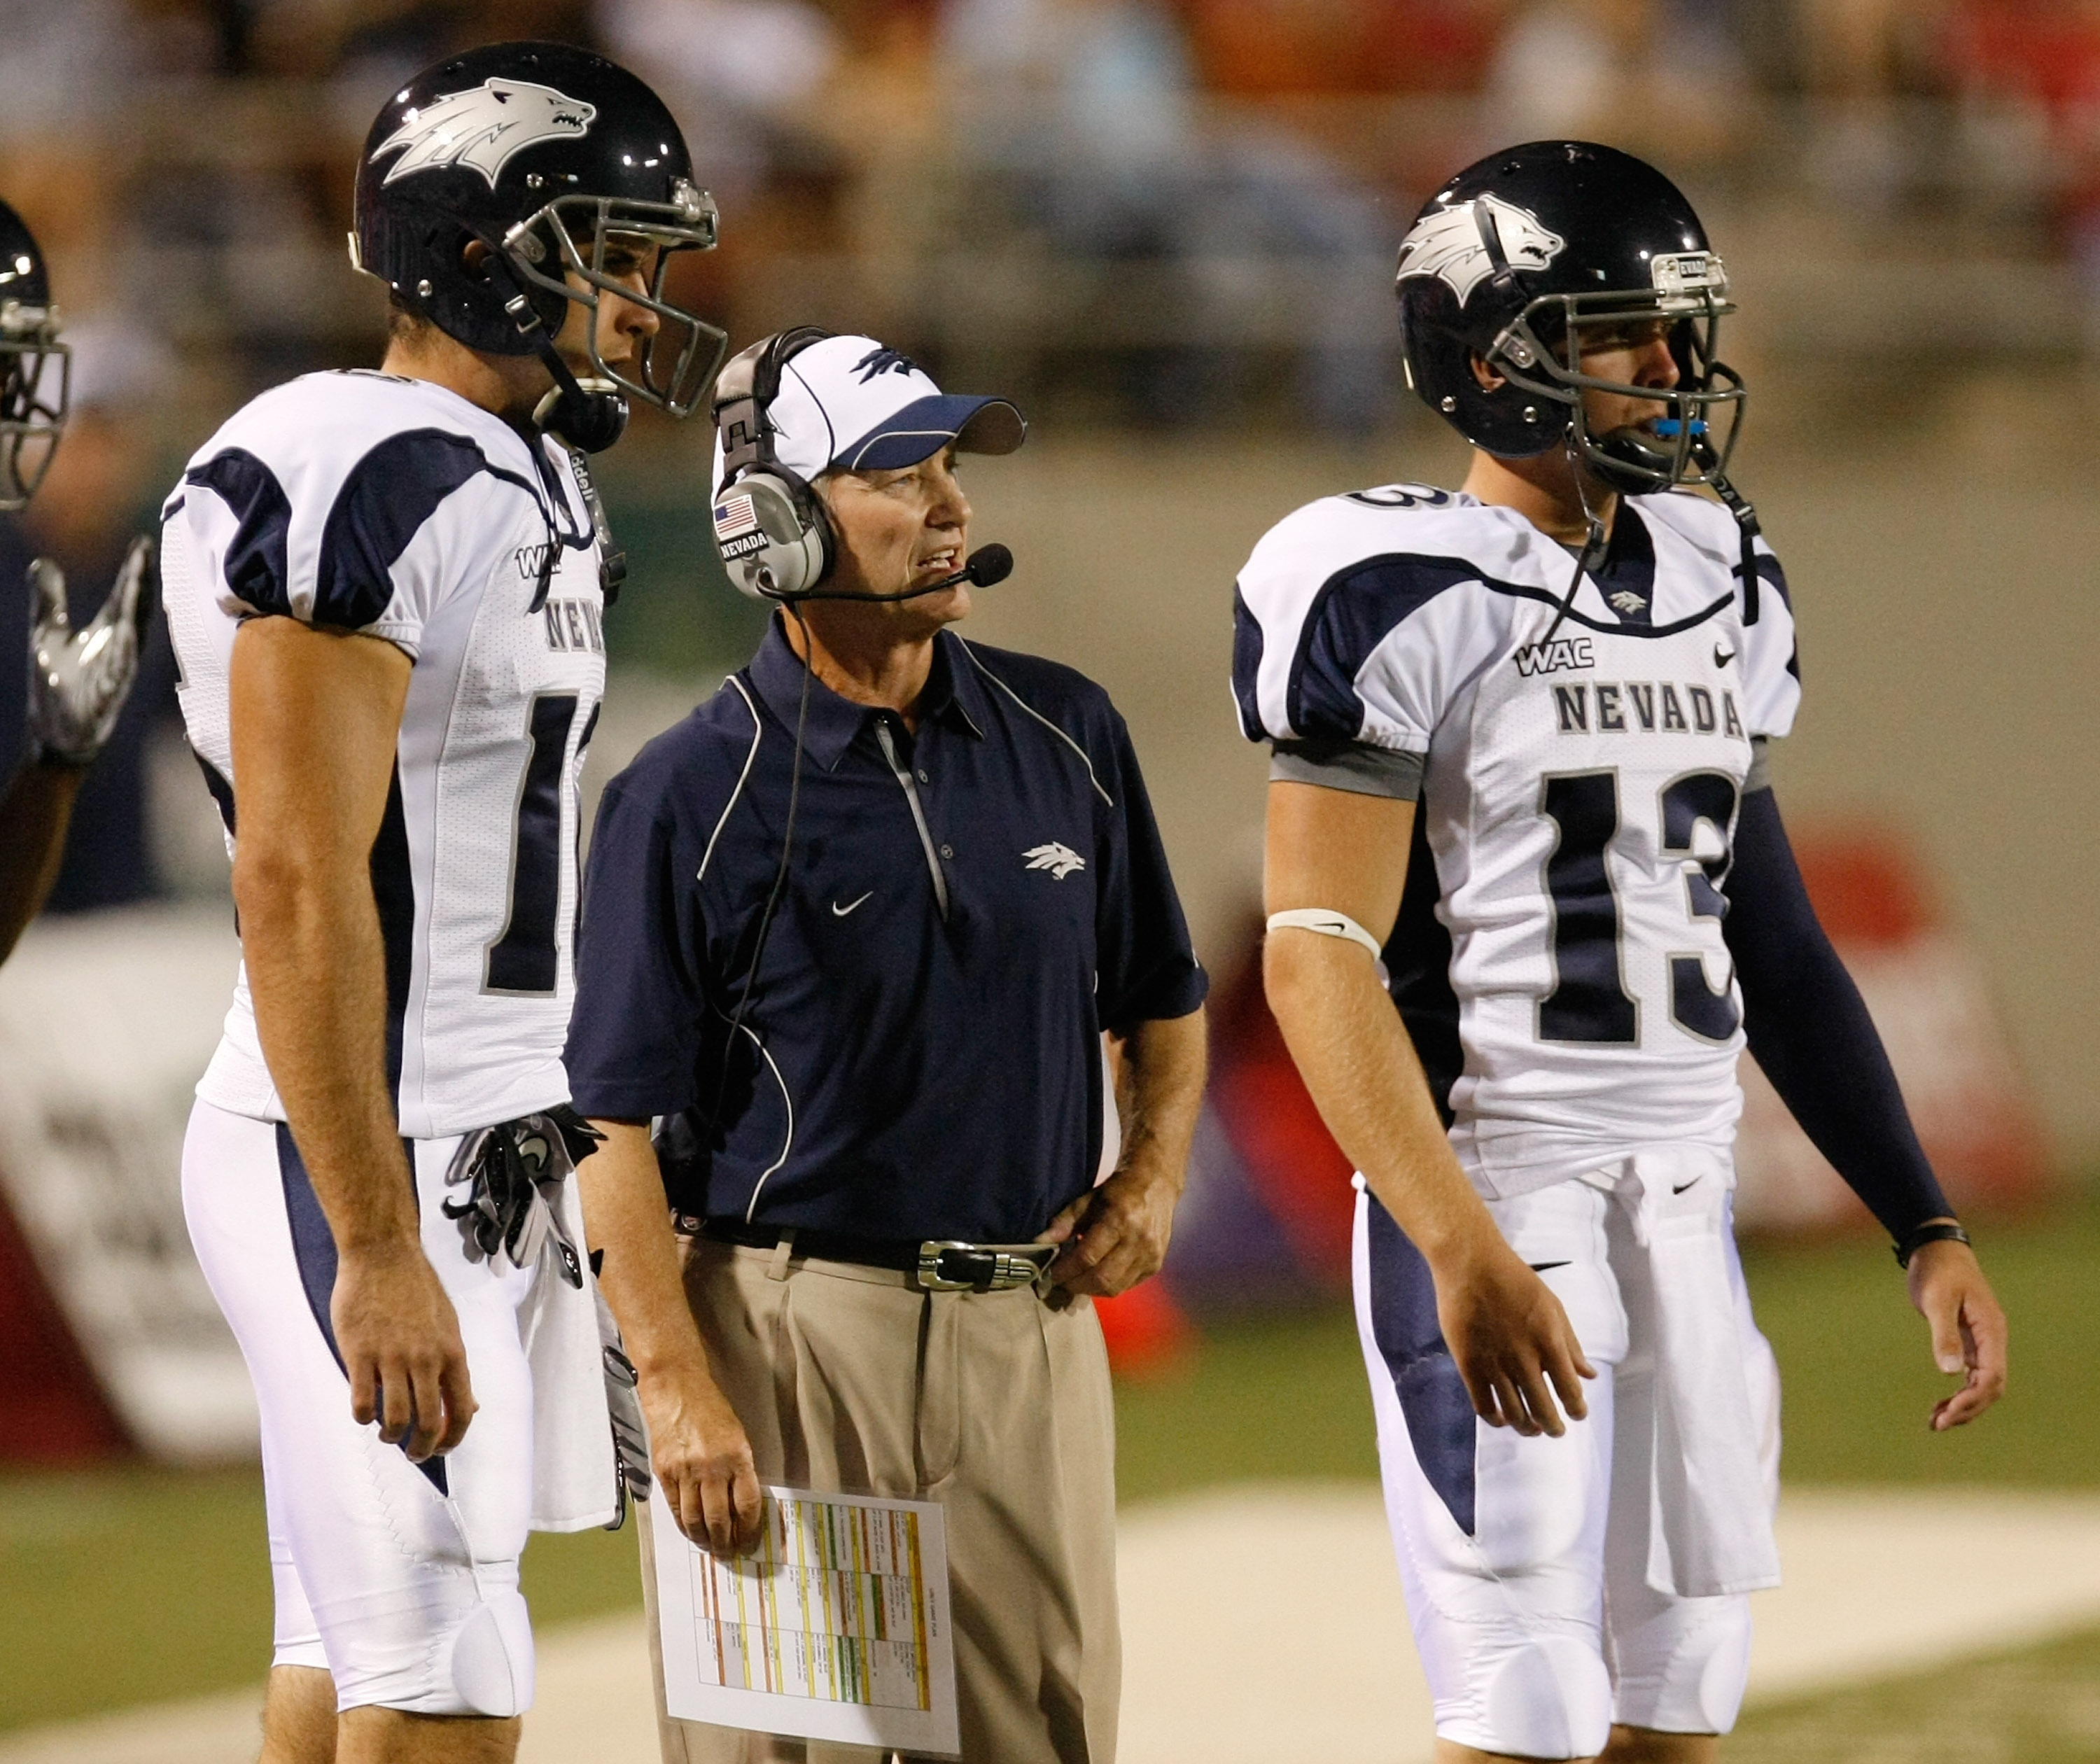 LAS VEGAS - OCTOBER 02:  Nevada Reno Wolf Pack head coach Chris Ault (C) is flanked by quarterbacks Tyler Lantrip #16 and Mason Magleby #13 as Ault watches his players take on the UNLV Rebels at Sam Boyd Stadium October 2, 2010 in Las Vegas, Nevada. Nevad